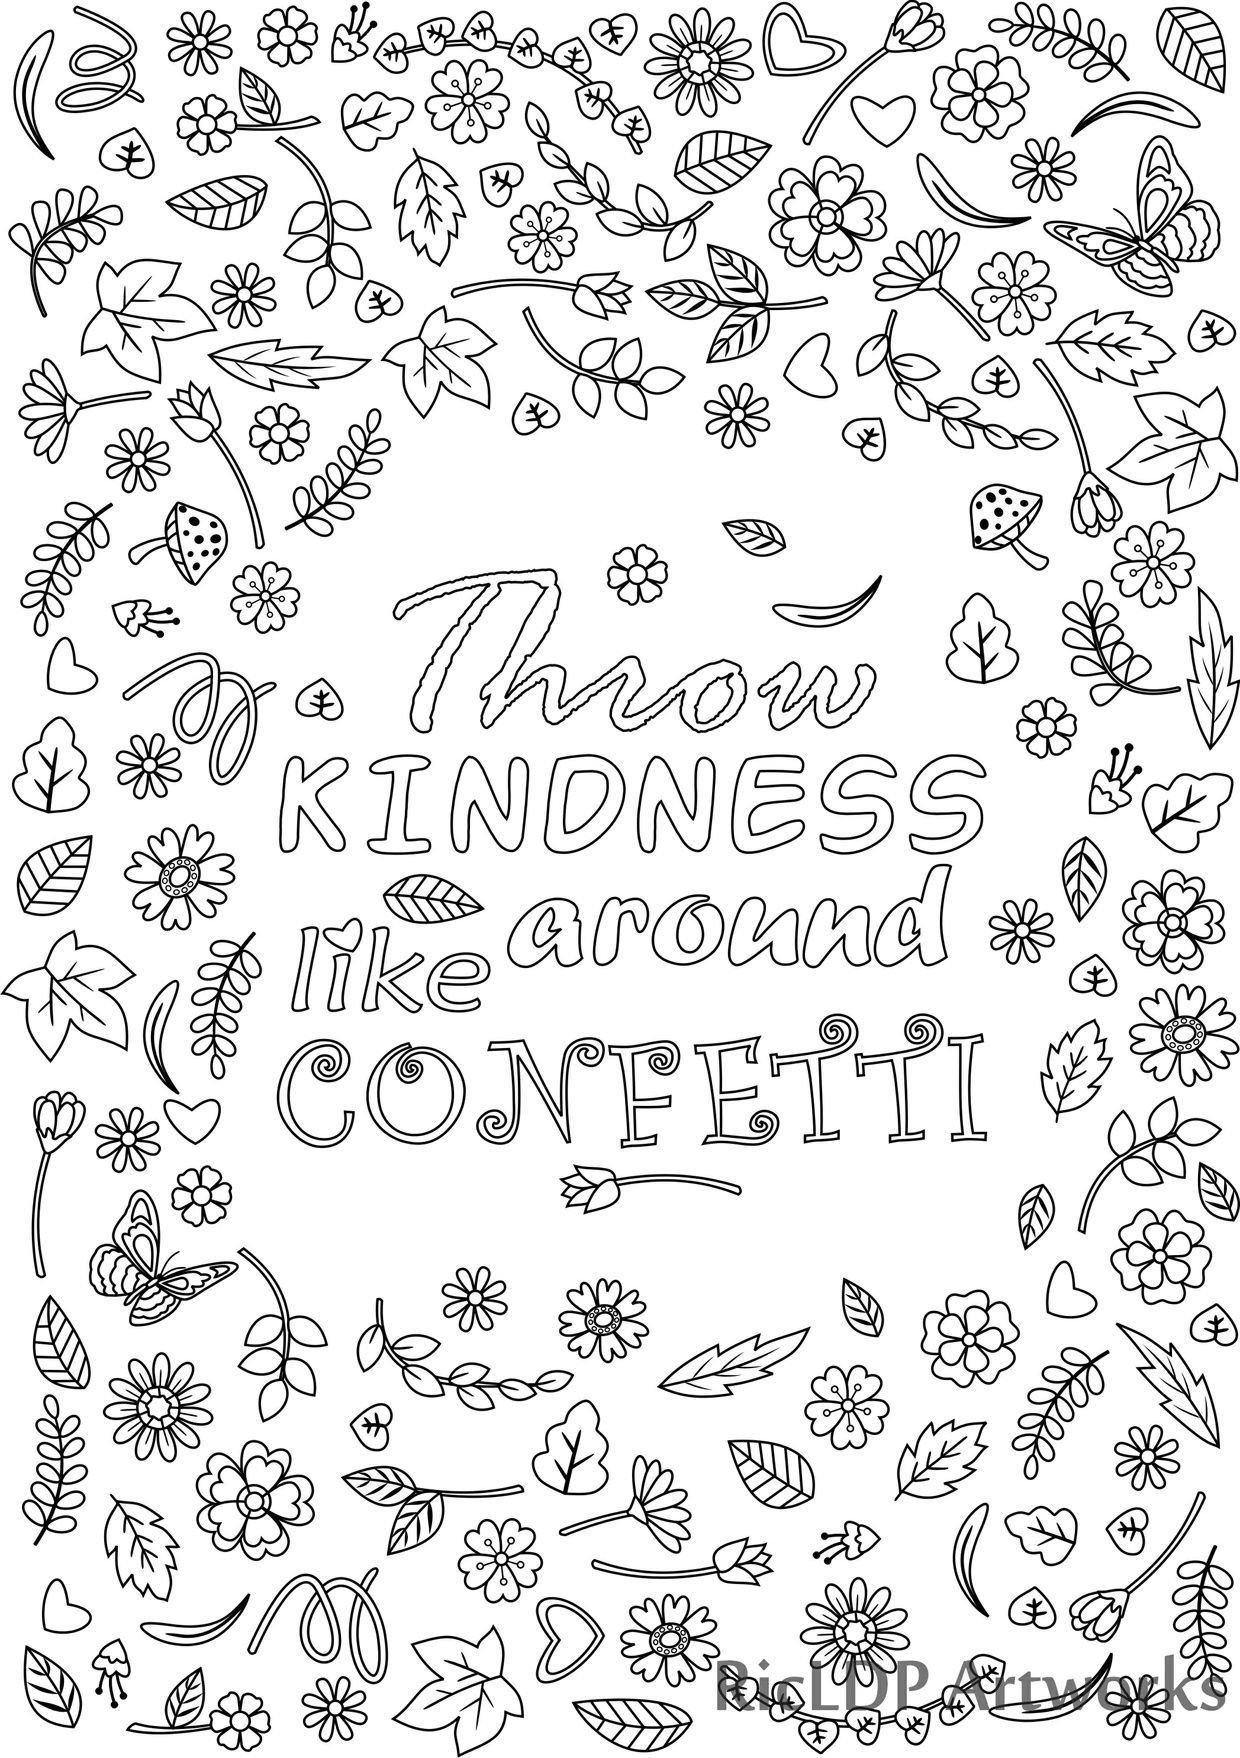 Throw Kindness Around Like Confetti Coloring Page For Adults Throwkindness Coloringpage